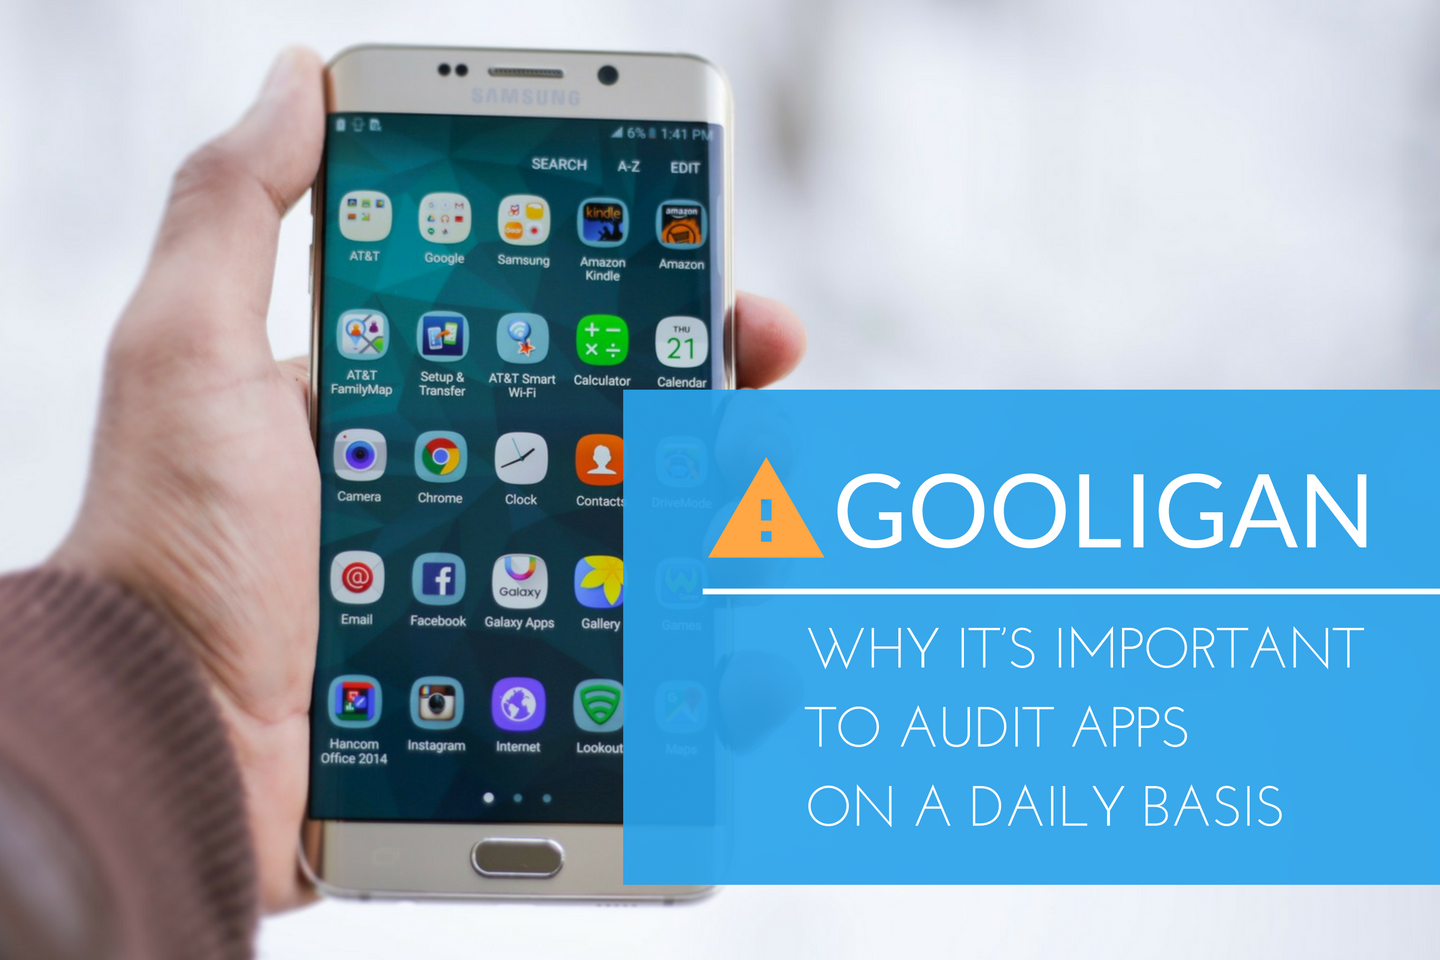 Gooligan: Why It's so Important to Audit Apps on a Daily Basis